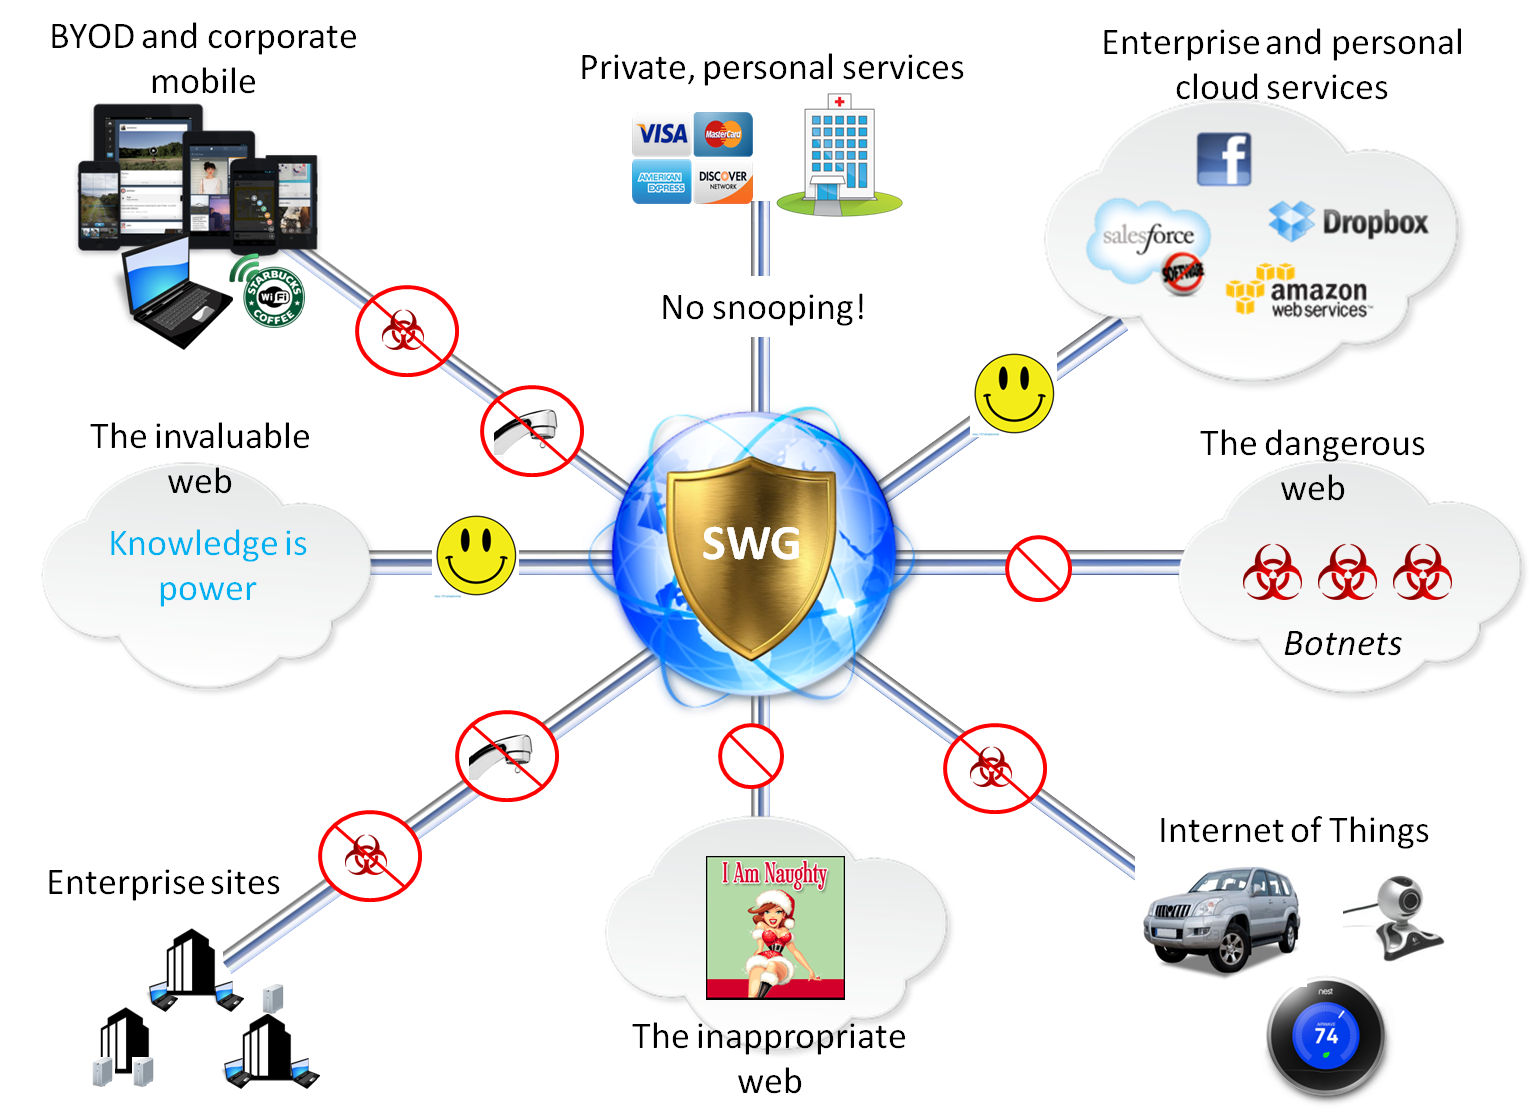 small resolution of in recent years however the swg market has struggled to cope with cybersecurity issues cloud computing and mobility roiling the it environment